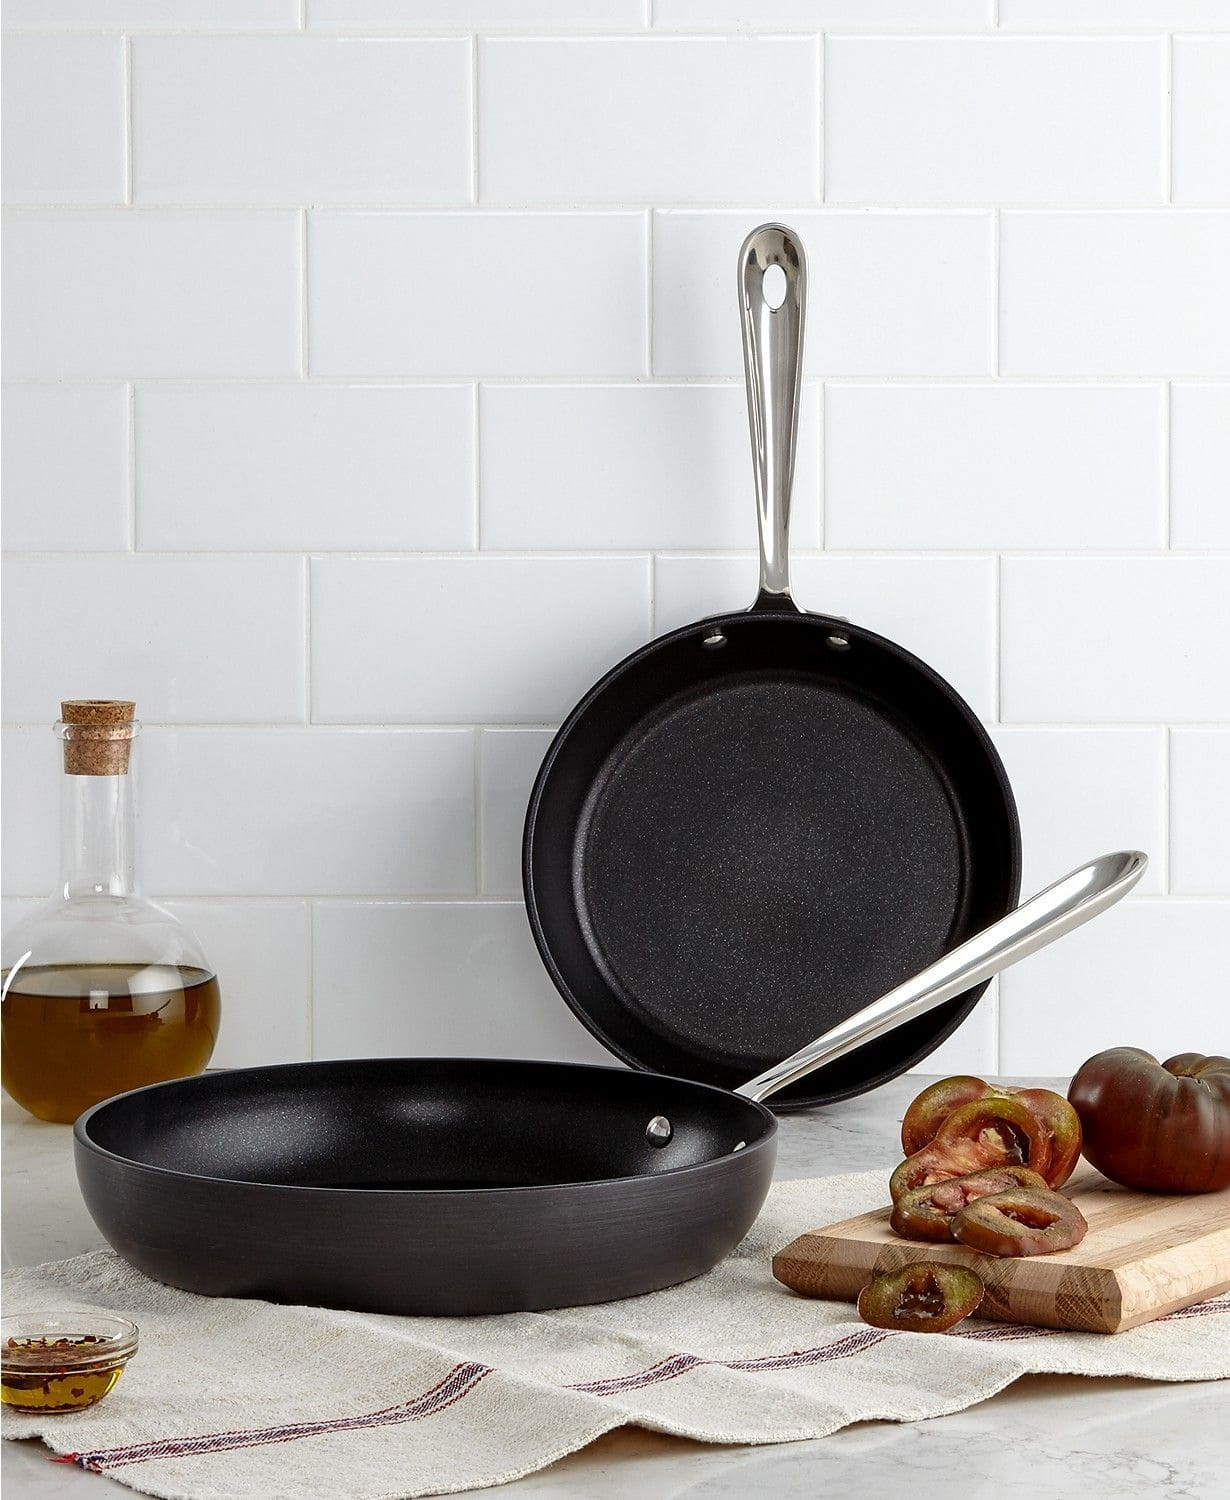 "All-Clad Hard Anodized 8"" & 10"" Fry Pan Set $33.59 at Macy's (in-store pick up is available)"